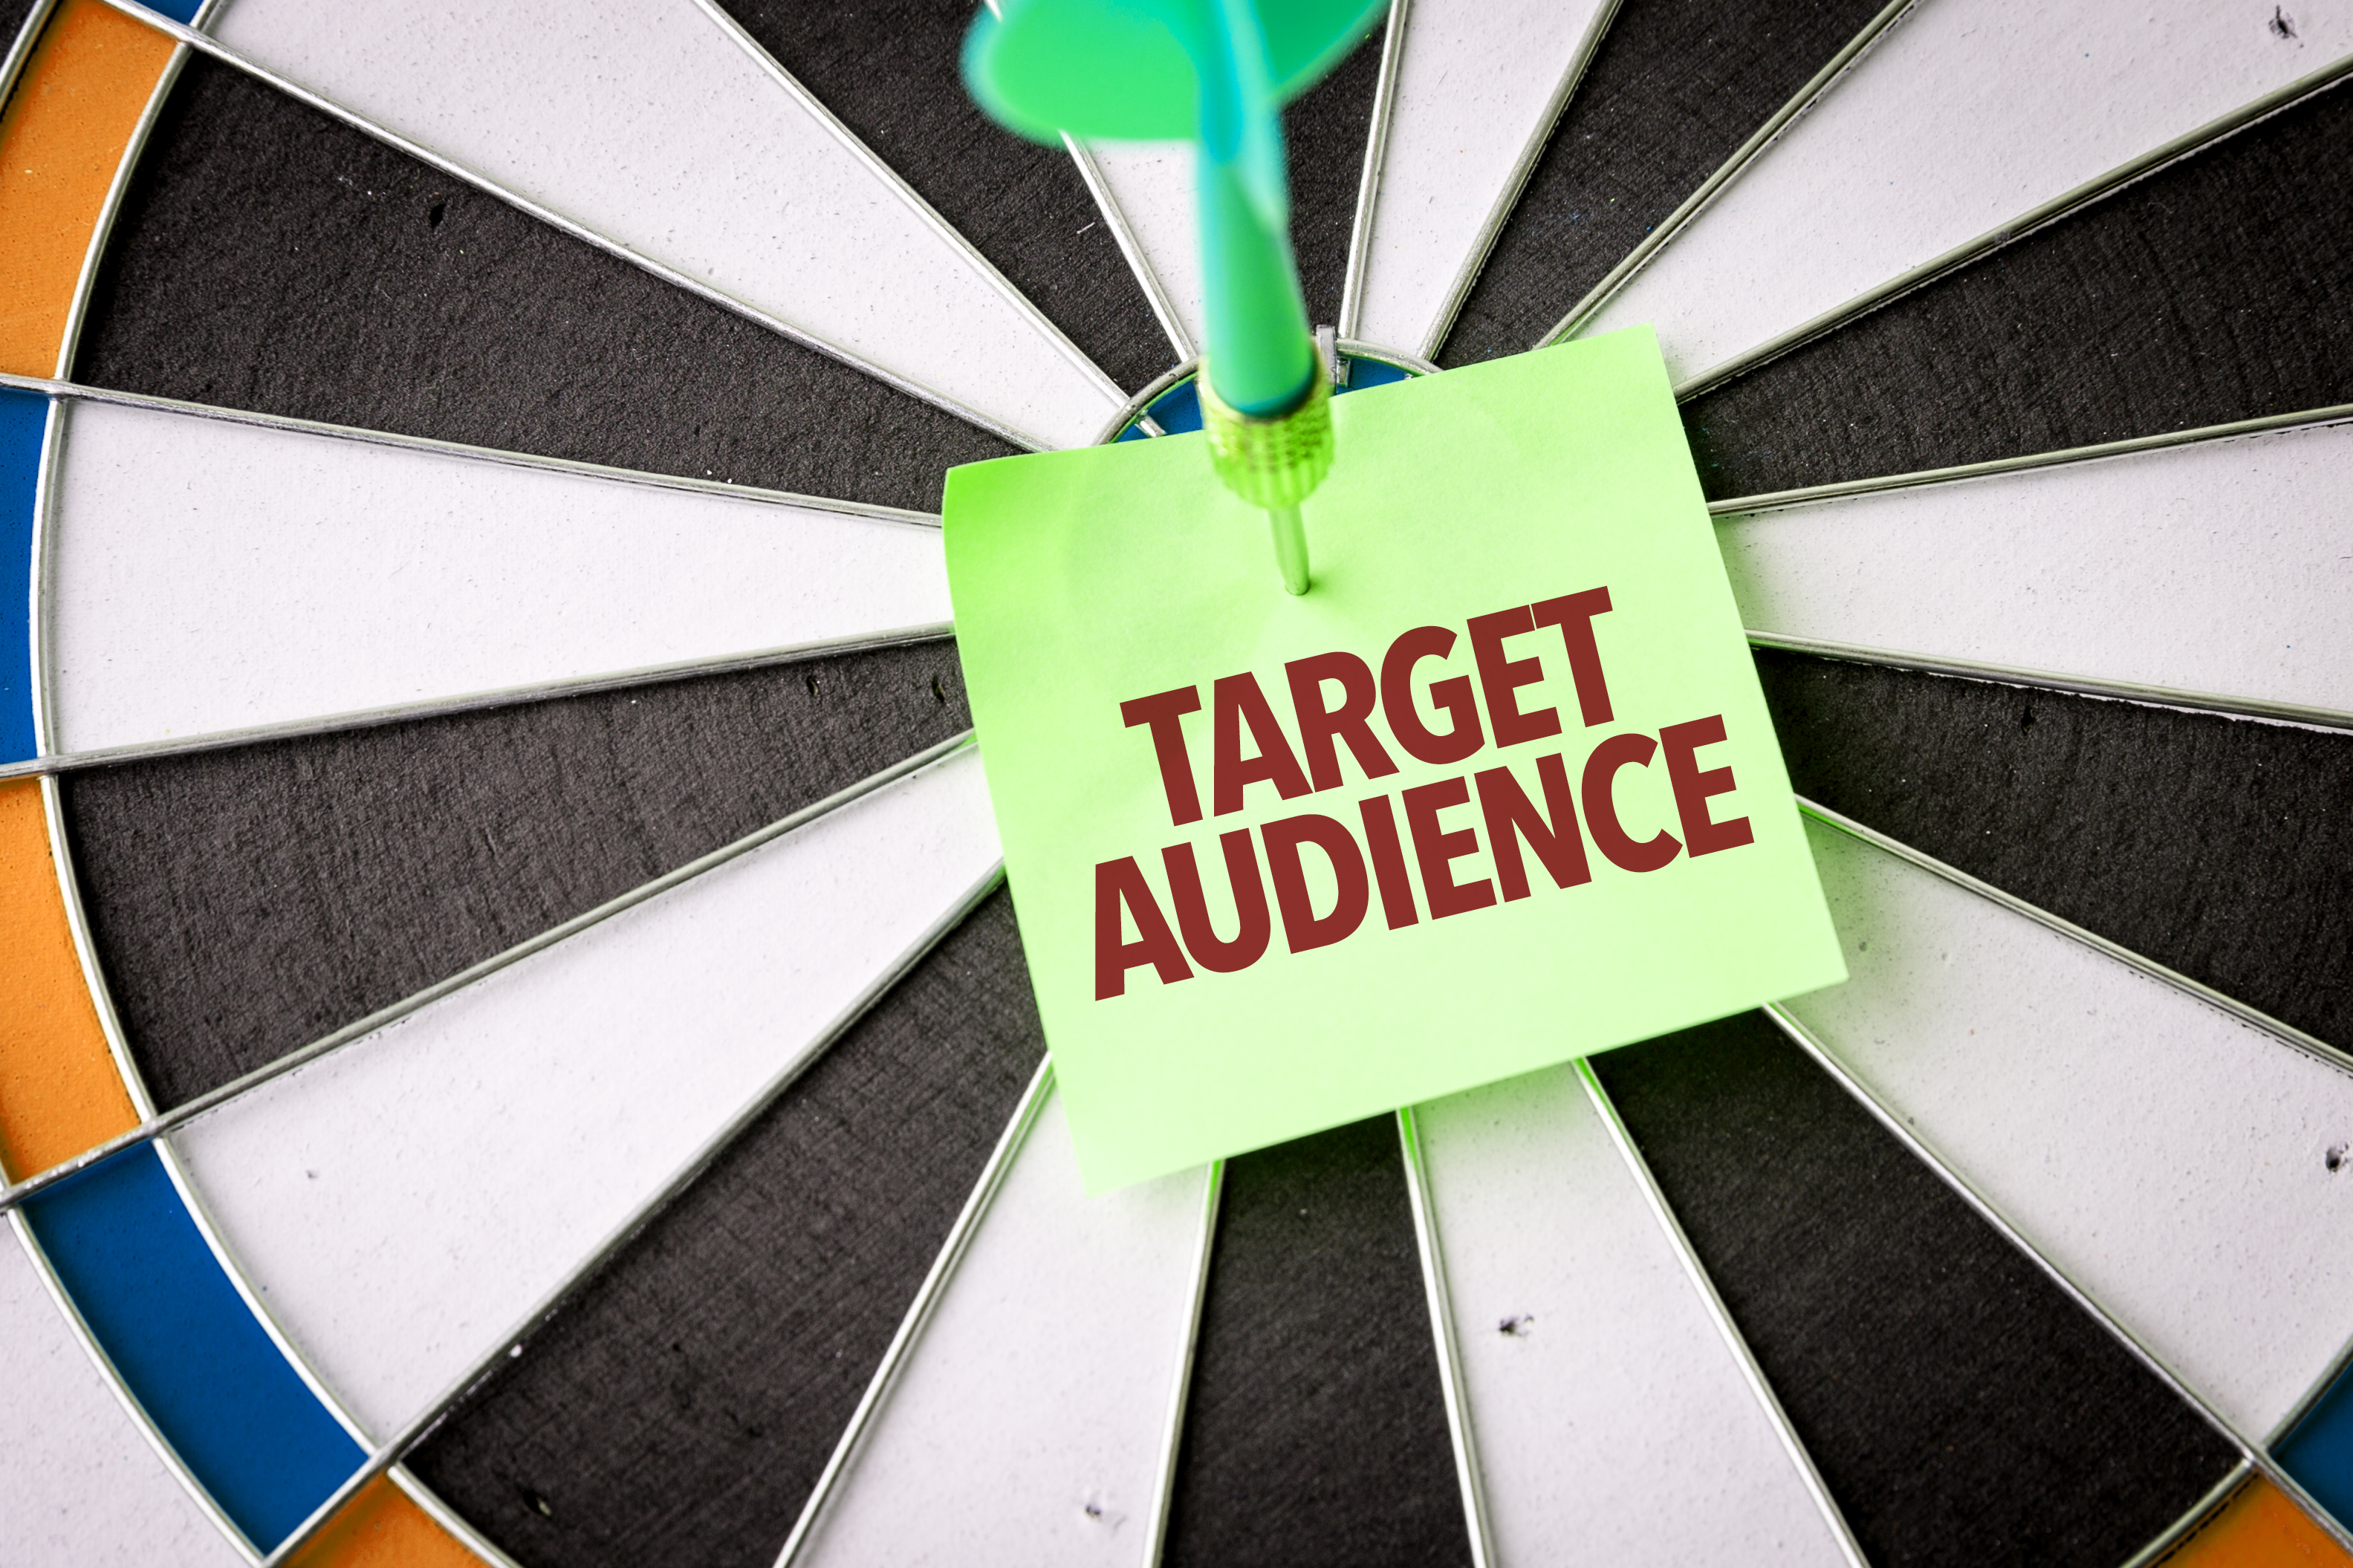 Bullseye dart board with target audience in the center.